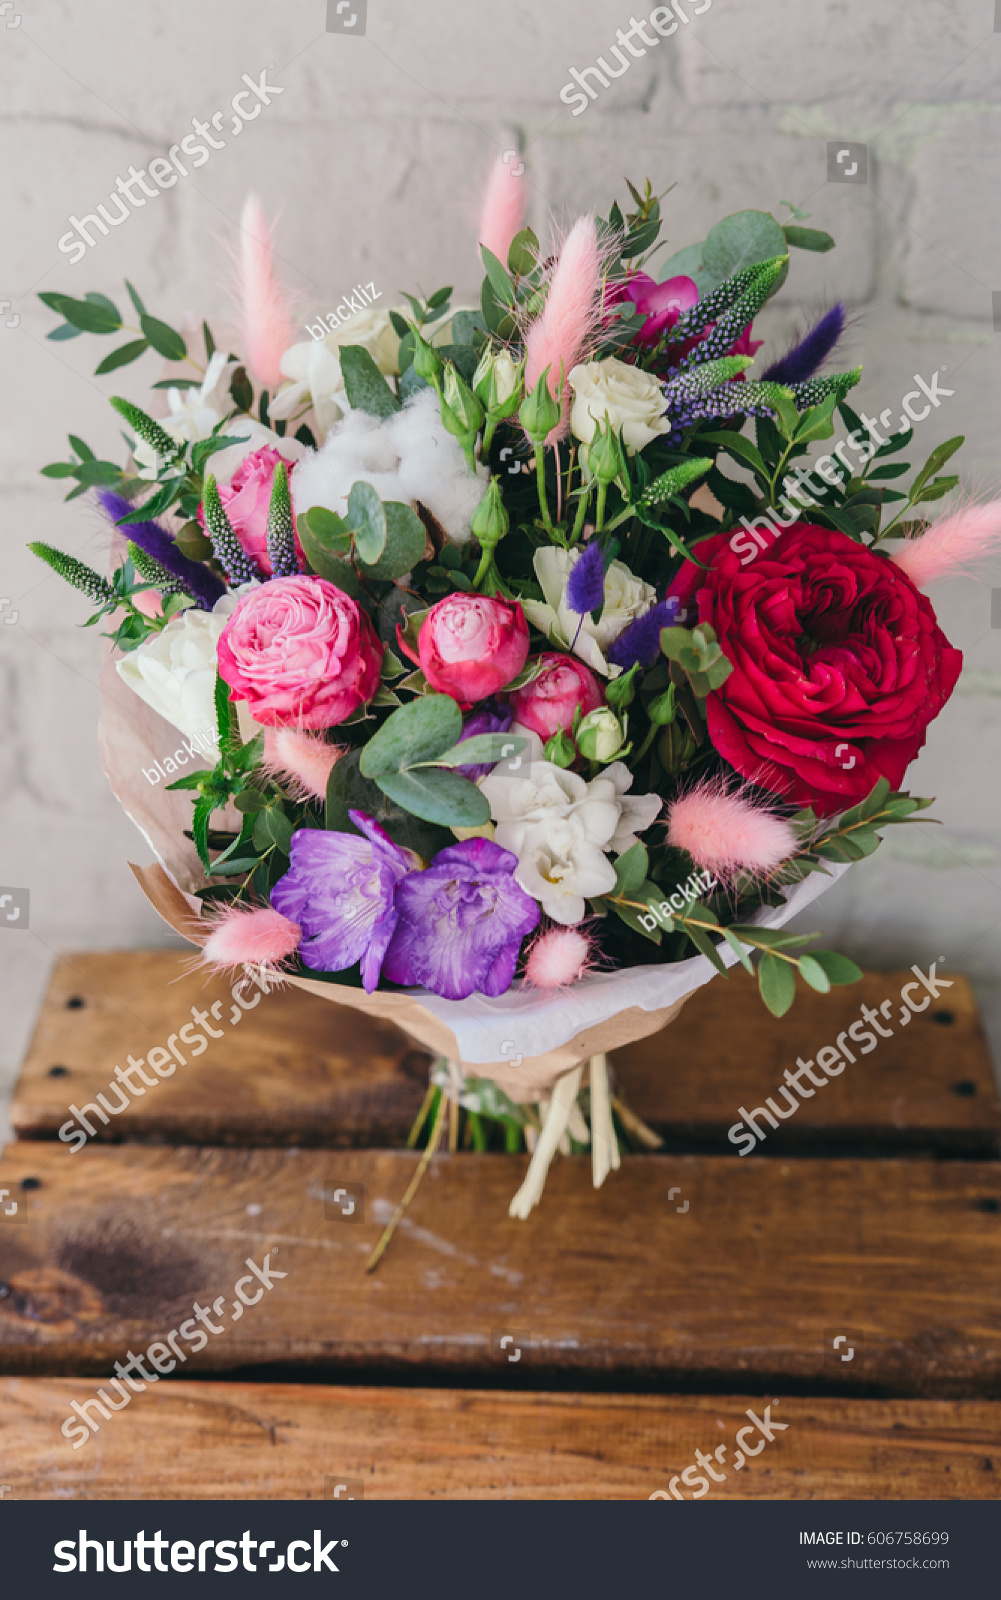 Stylish Bouquet Of Fresh Flowers Composition From Freesia Roses